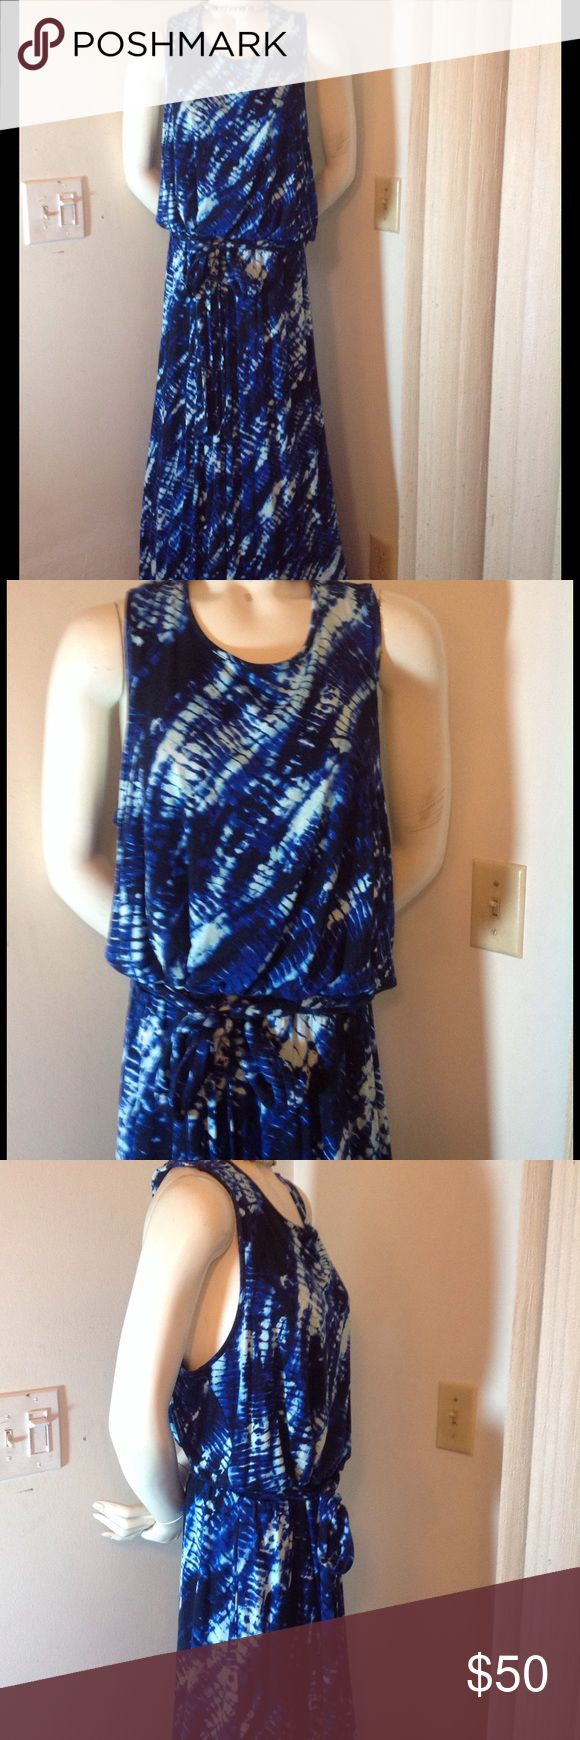 BOHEMIAN BLUE AND WHITE MAXI DRESS BLUE AND WHITE BOHO MAXI DRESS NWOT THIS IS SUCH BEAUTIFUL DRESS I JUST LOVE THE BACK SZ 14W HEIDI WEISEL Dresses Maxi